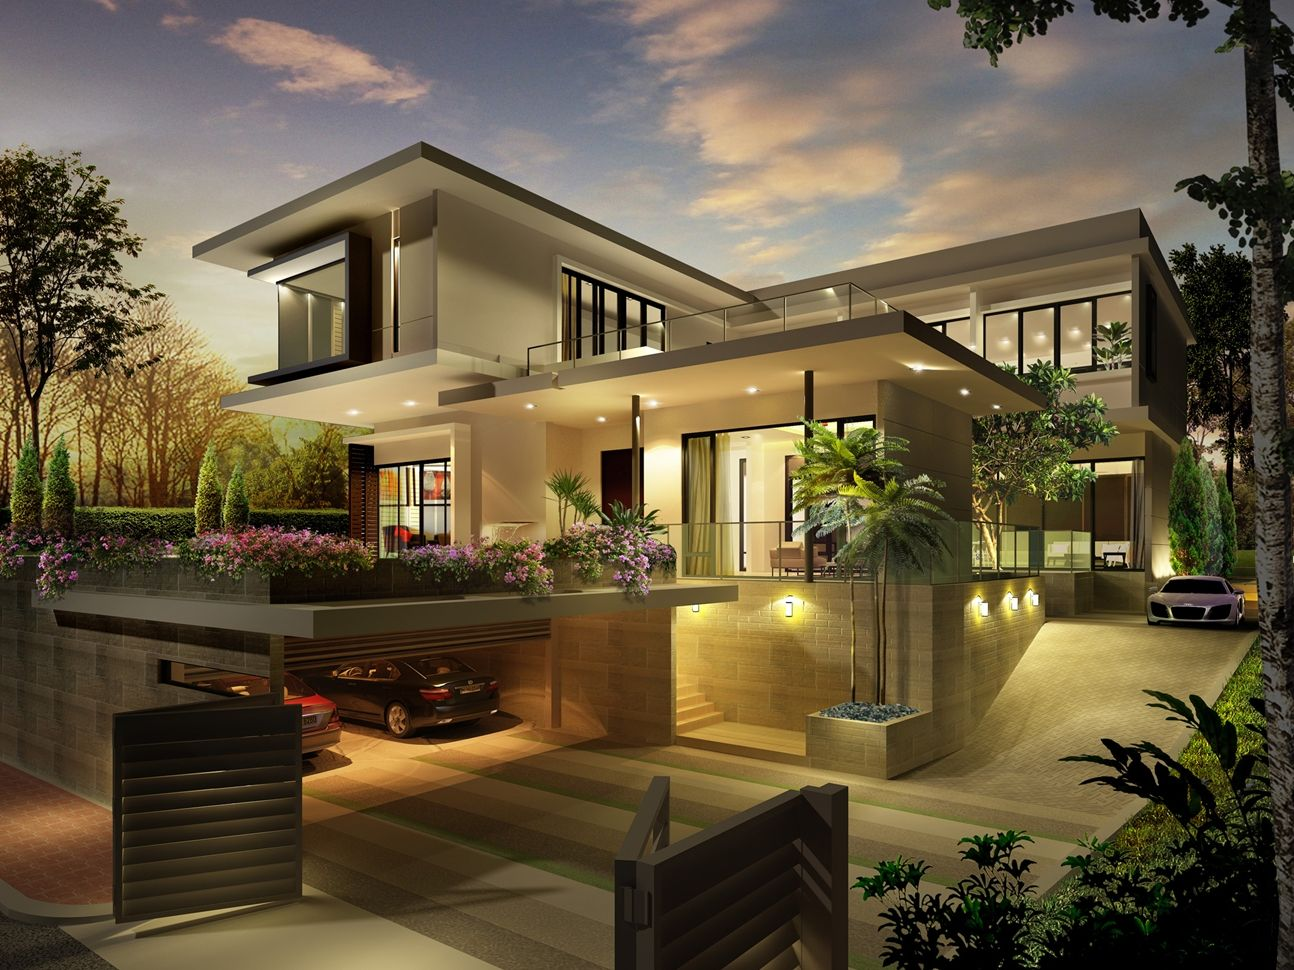 Pavilion Villa With Basement Car Park Luxury Homes Exterior Modern Exterior House Designs Modern House Exterior